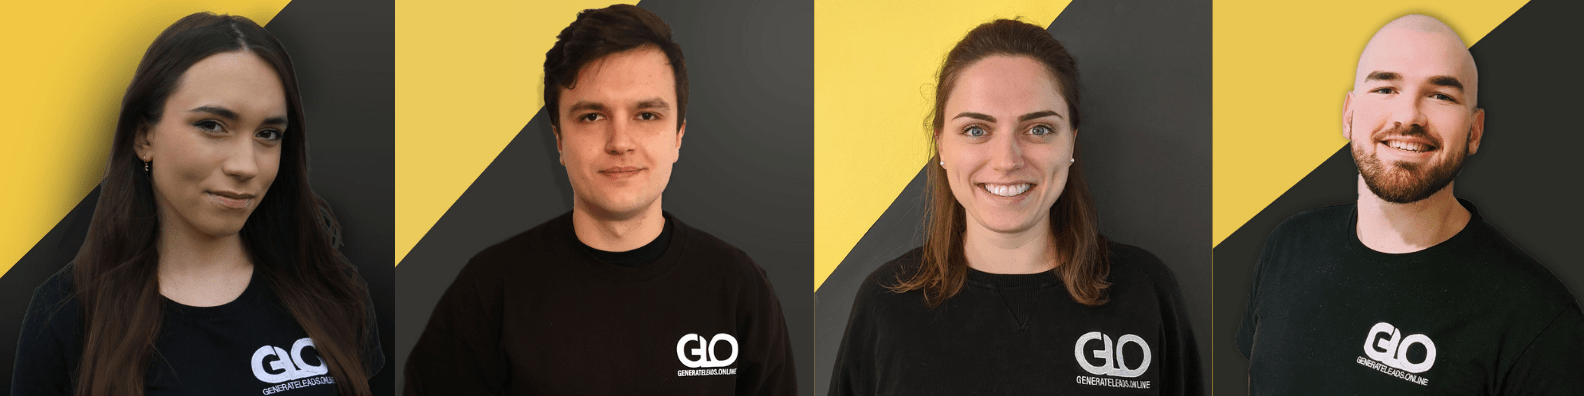 Suffolk digital agency builds remote team with degree apprenticeships